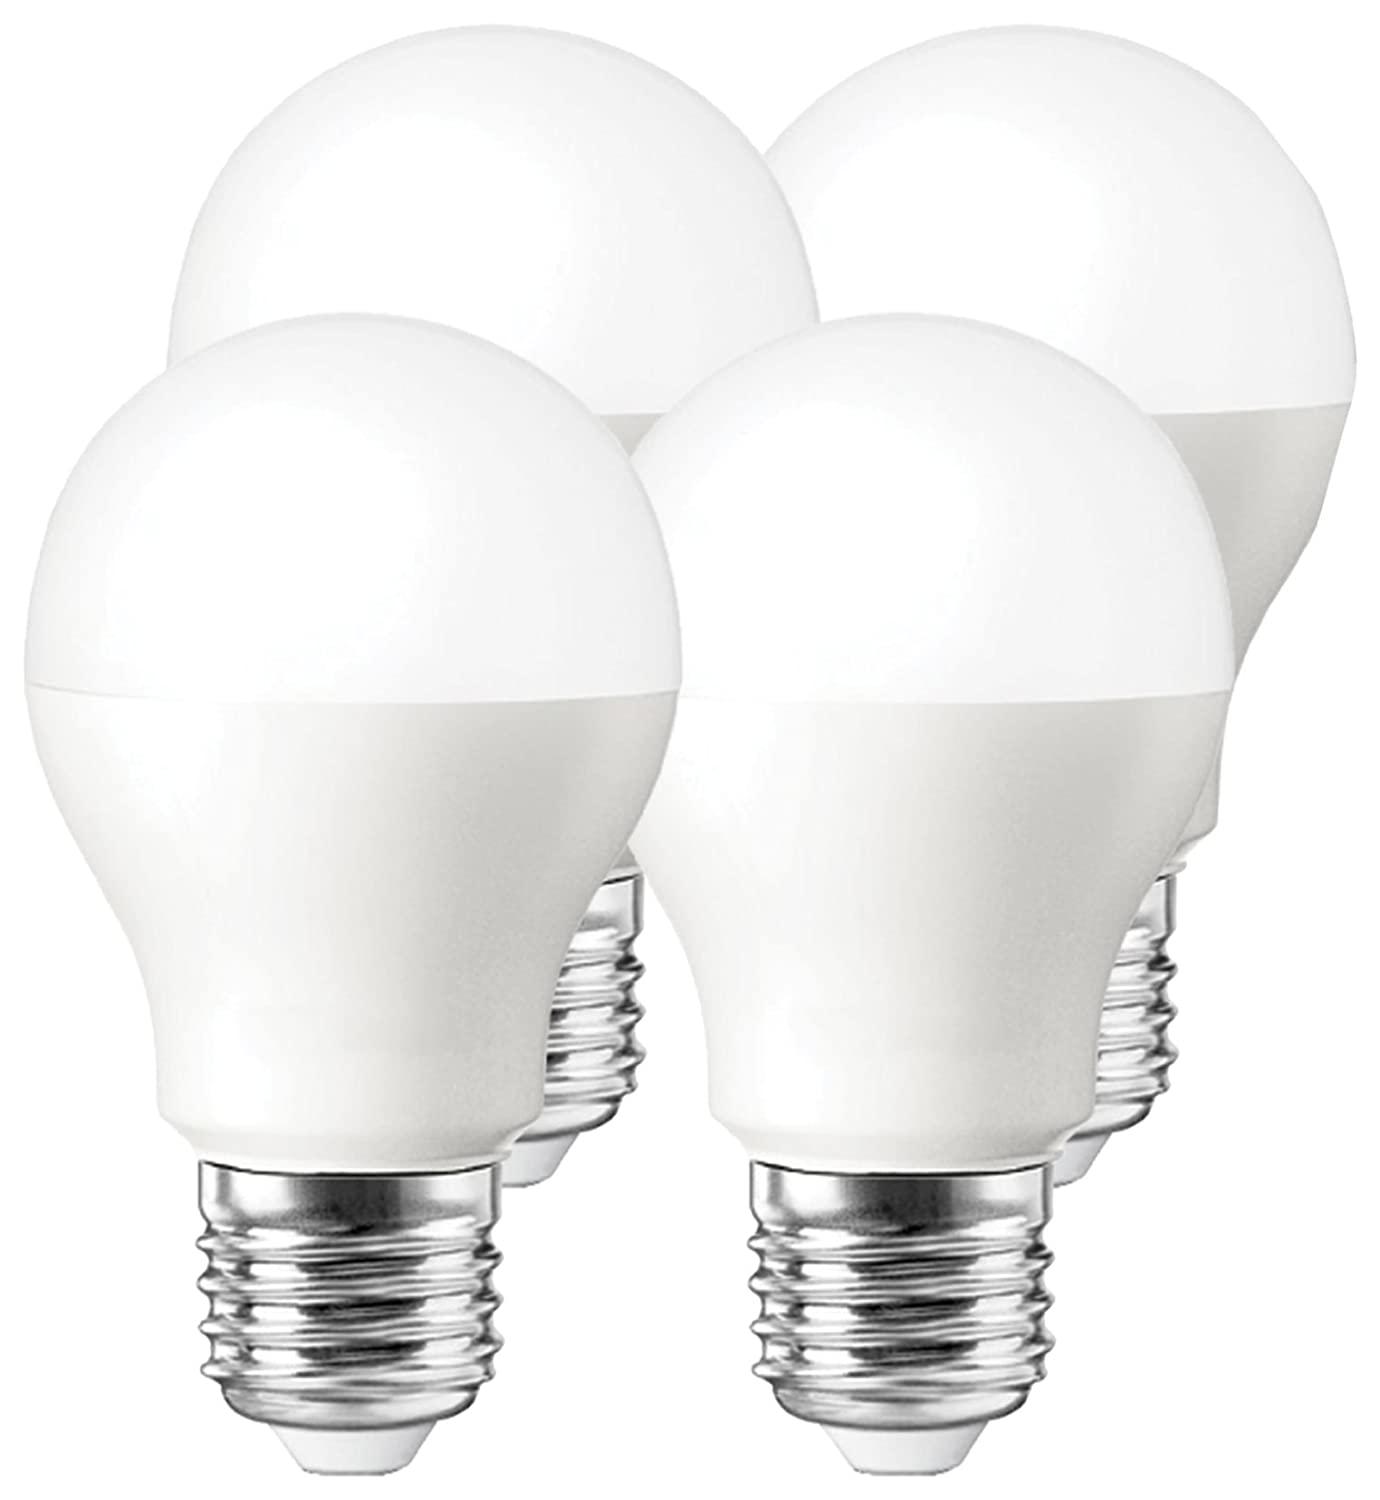 MiracleLED 604065 LED Energy Saver Household Replacement Rough Service 4 Piece 4-Pack